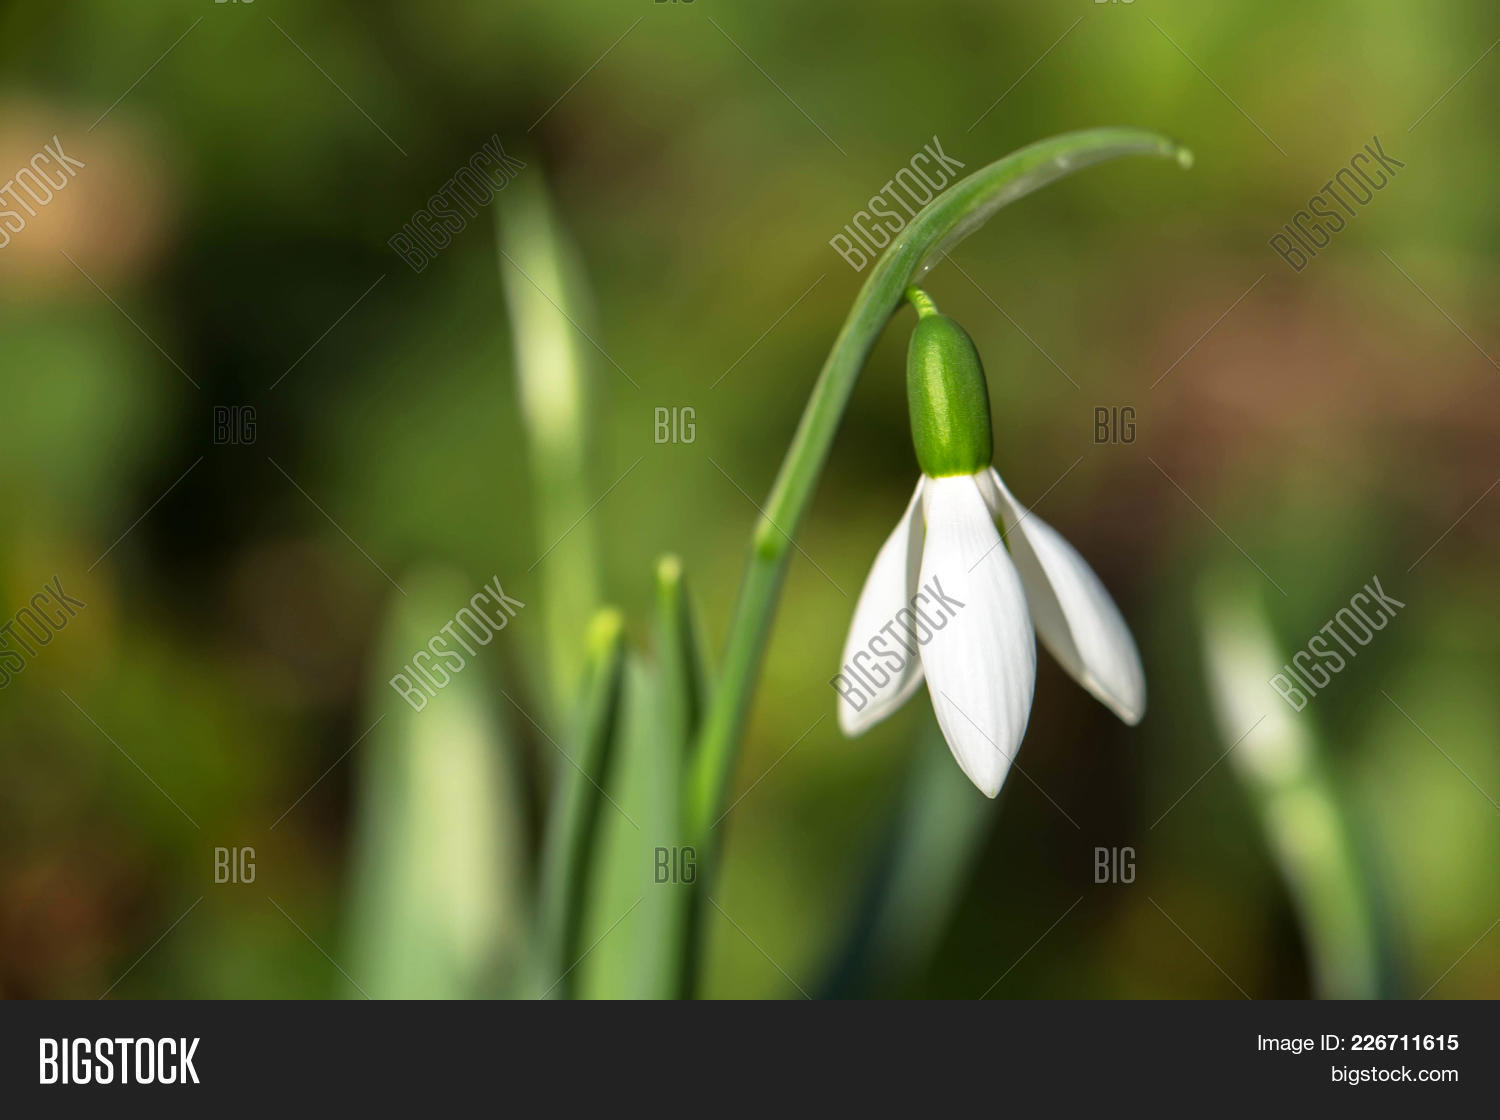 background,beautiful,beauty,beginning,bloom,blossom,closeup,concept,february,first,flora,floral,flower,forest,fresh,galanthus,garden,green,leaf,march,natural,nature,petal,plant,season,snow,snowdrop,spring,sun,symbol,thaw,white,winter